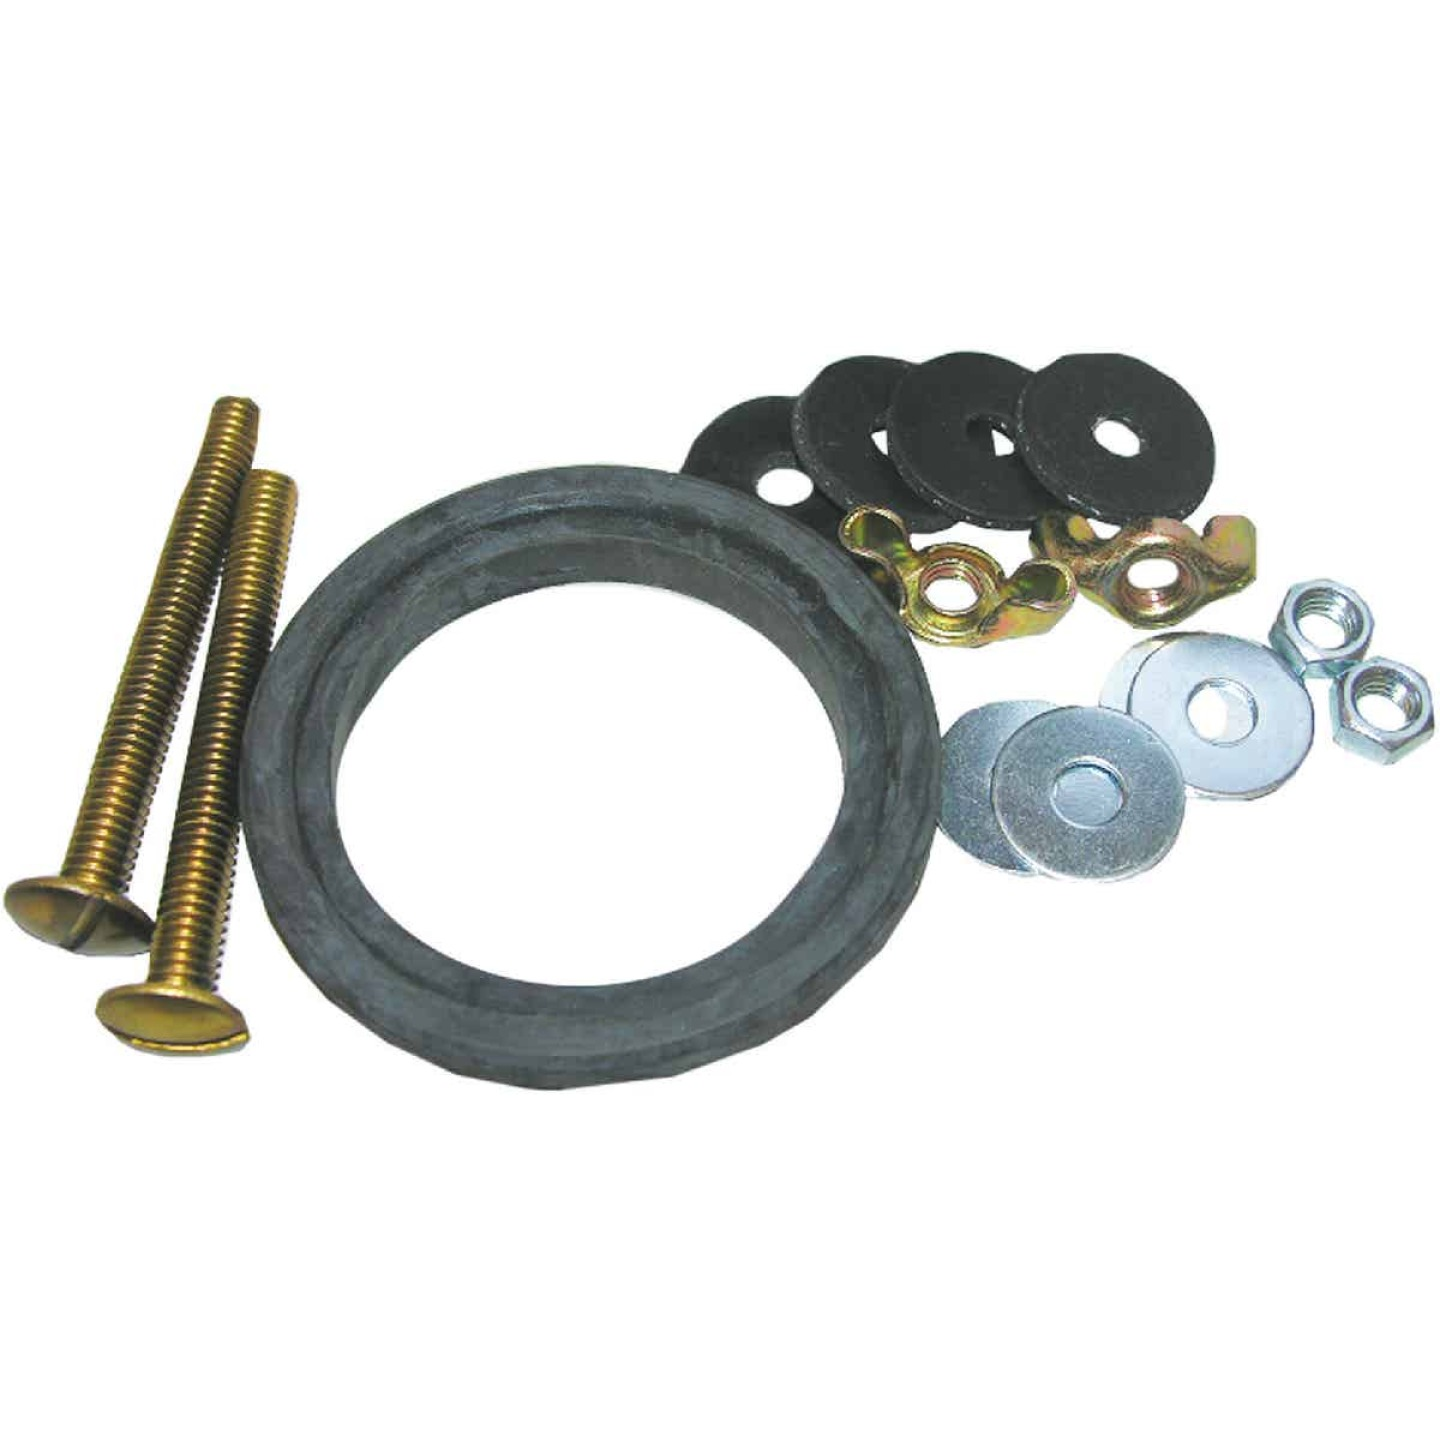 Lasco Eljer Toilet Tank To Bowl Bolt Kit with Gasket  Image 1